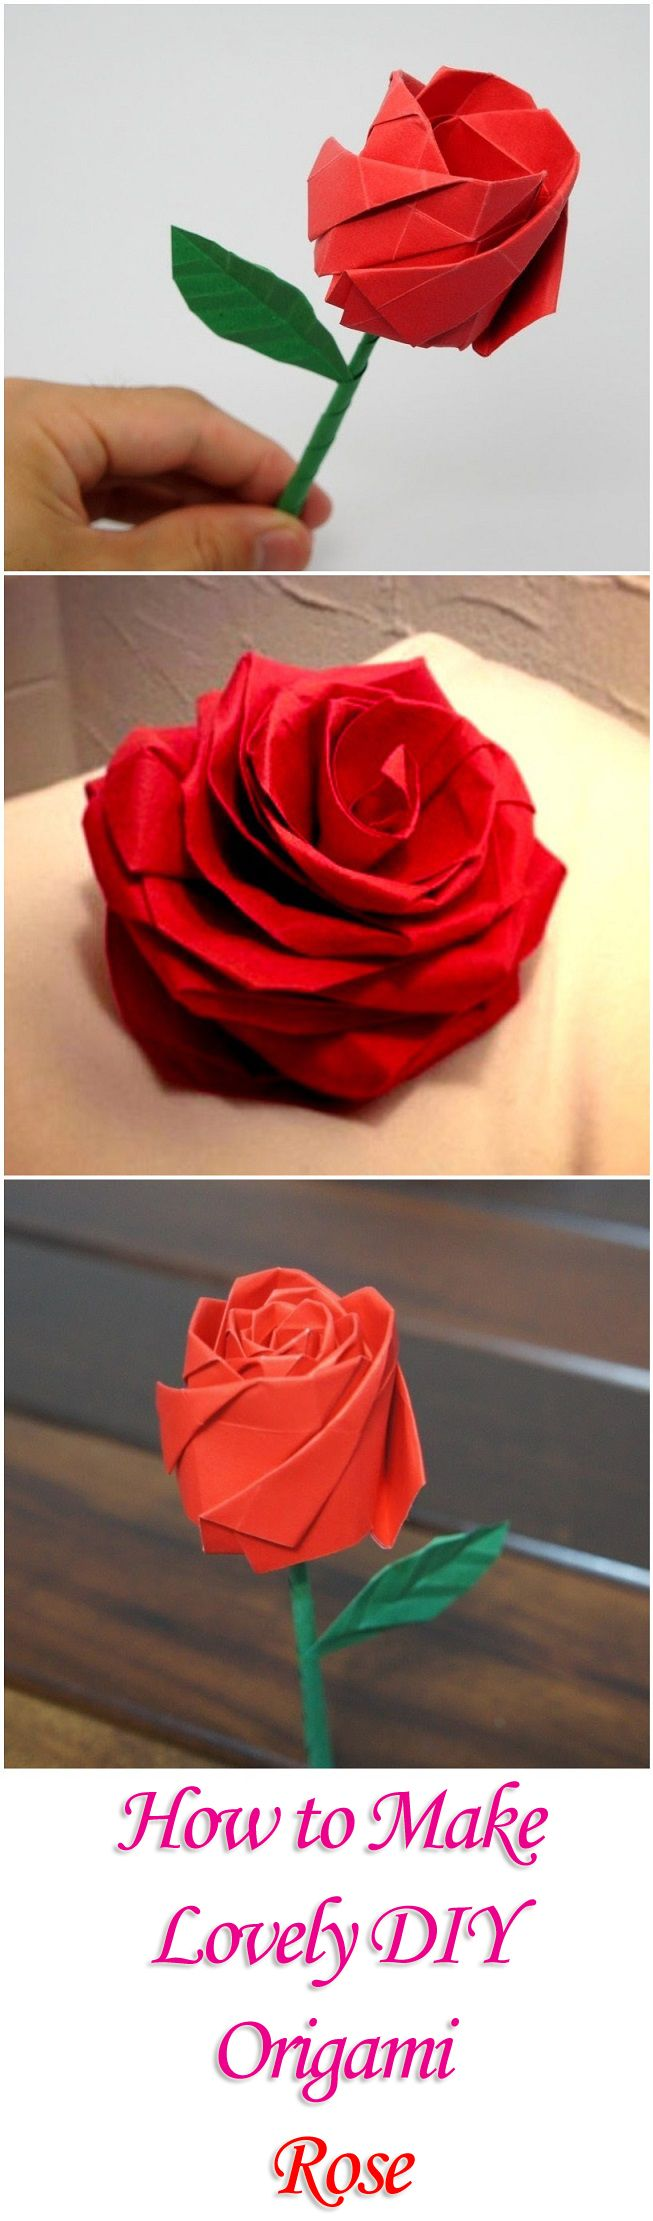 How to Make Lovely DIY Origami Rose                                                                                                                                                     More                                                                                                                                                                                 More